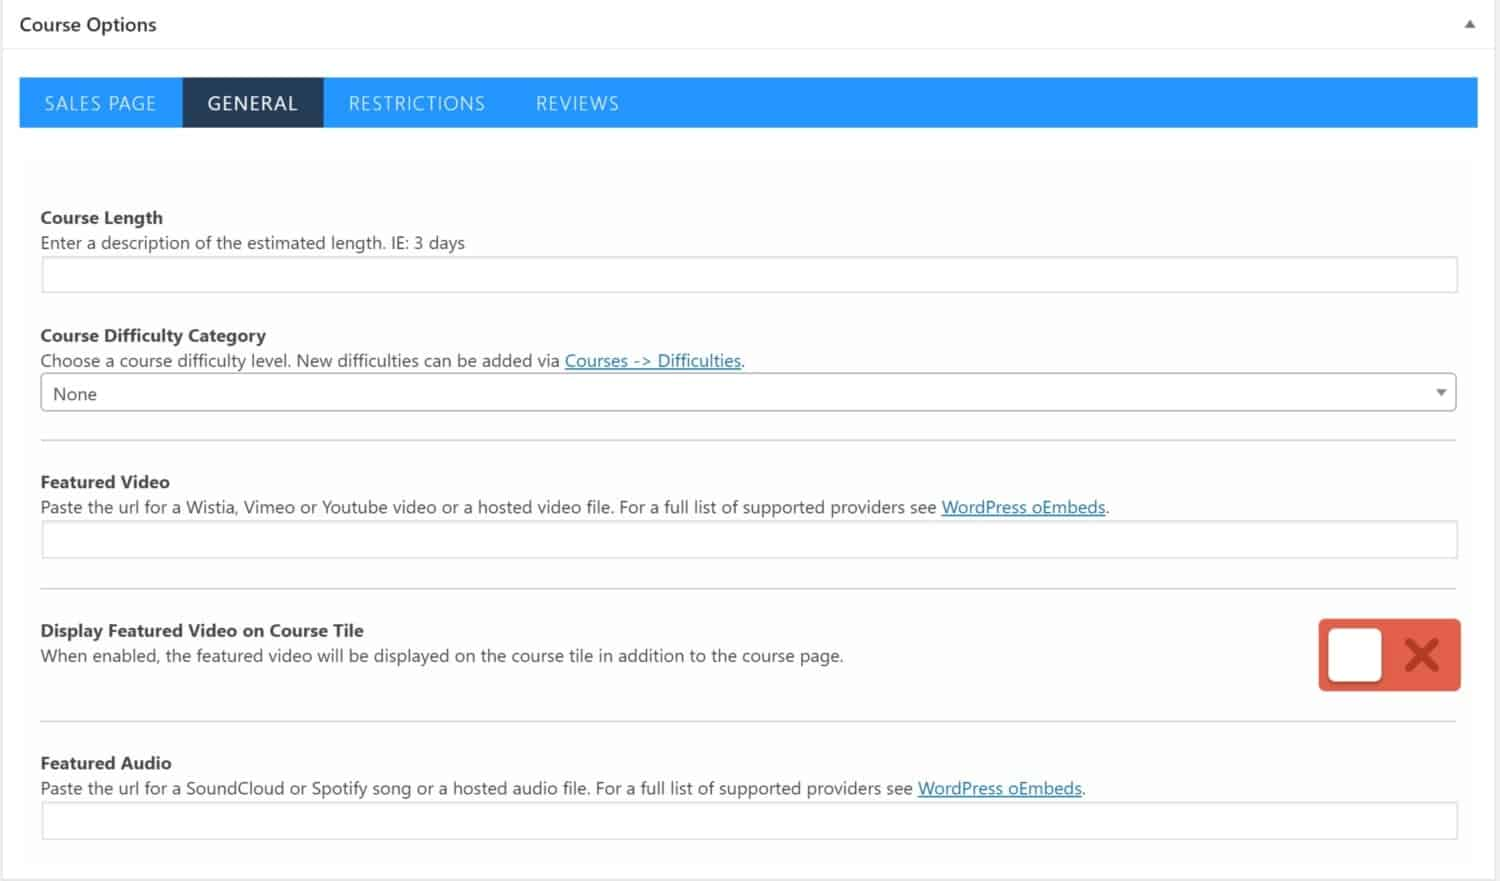 Screenshot of LifterLMS course options general